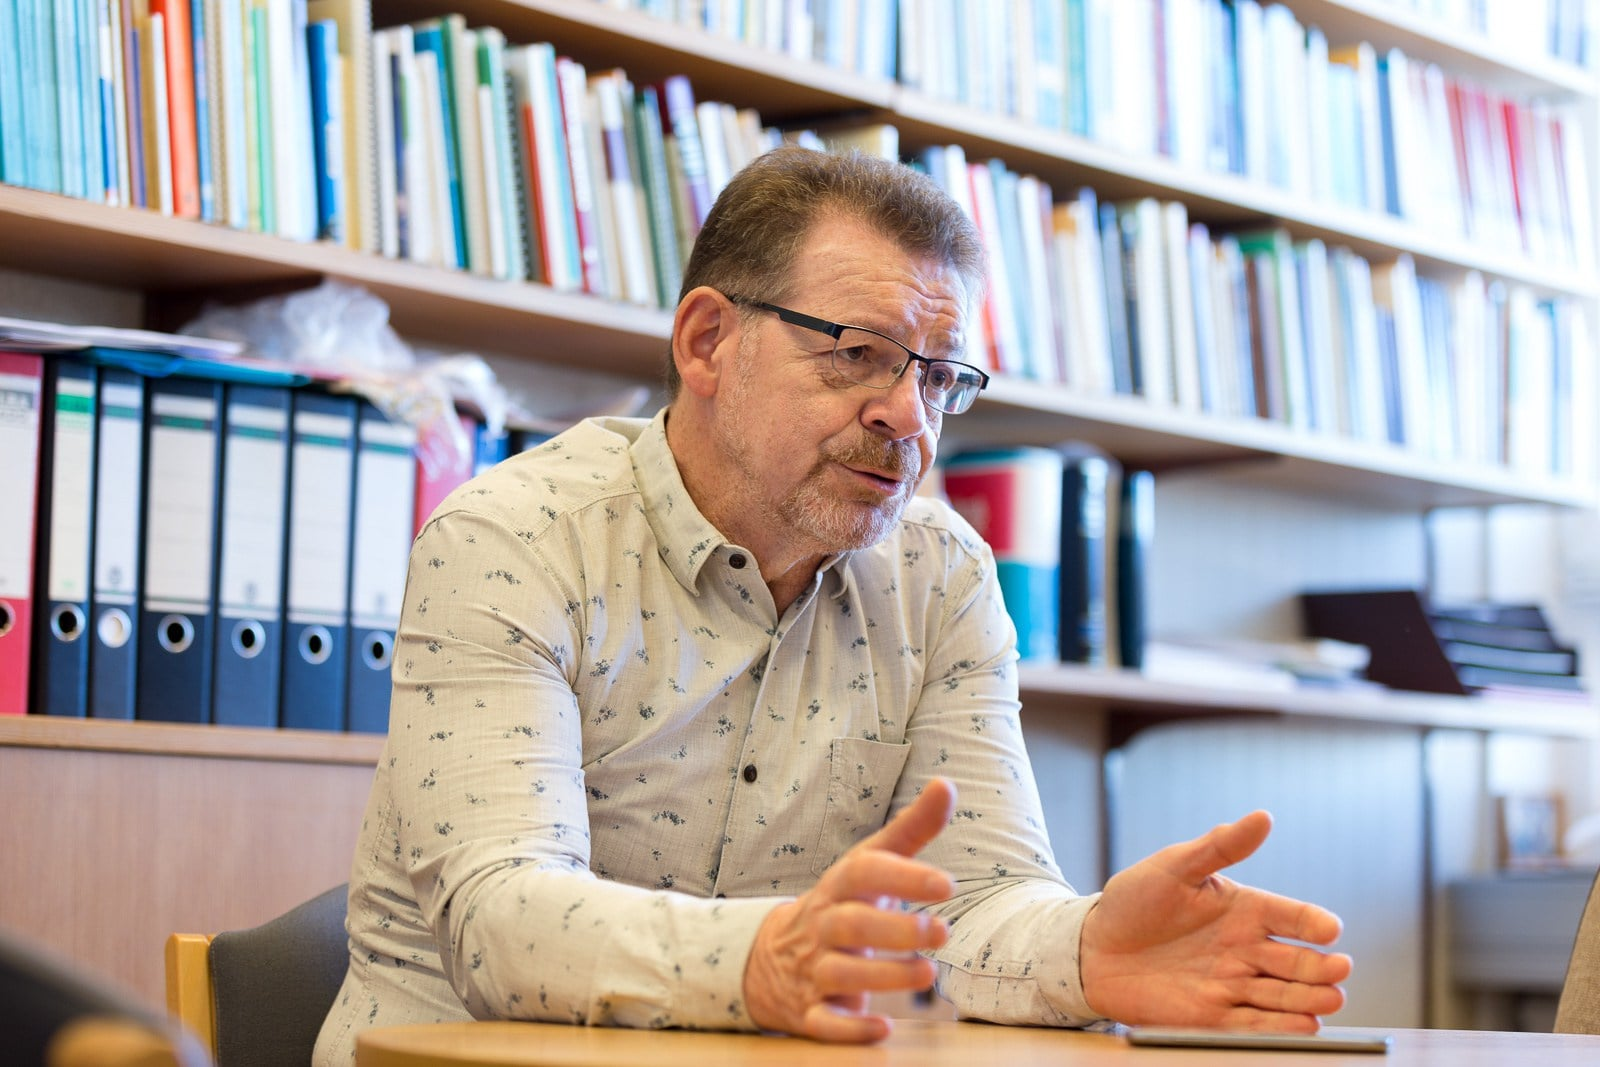 Ask A Linguist: Why Is Icelandic Such A Difficult Language To Learn?